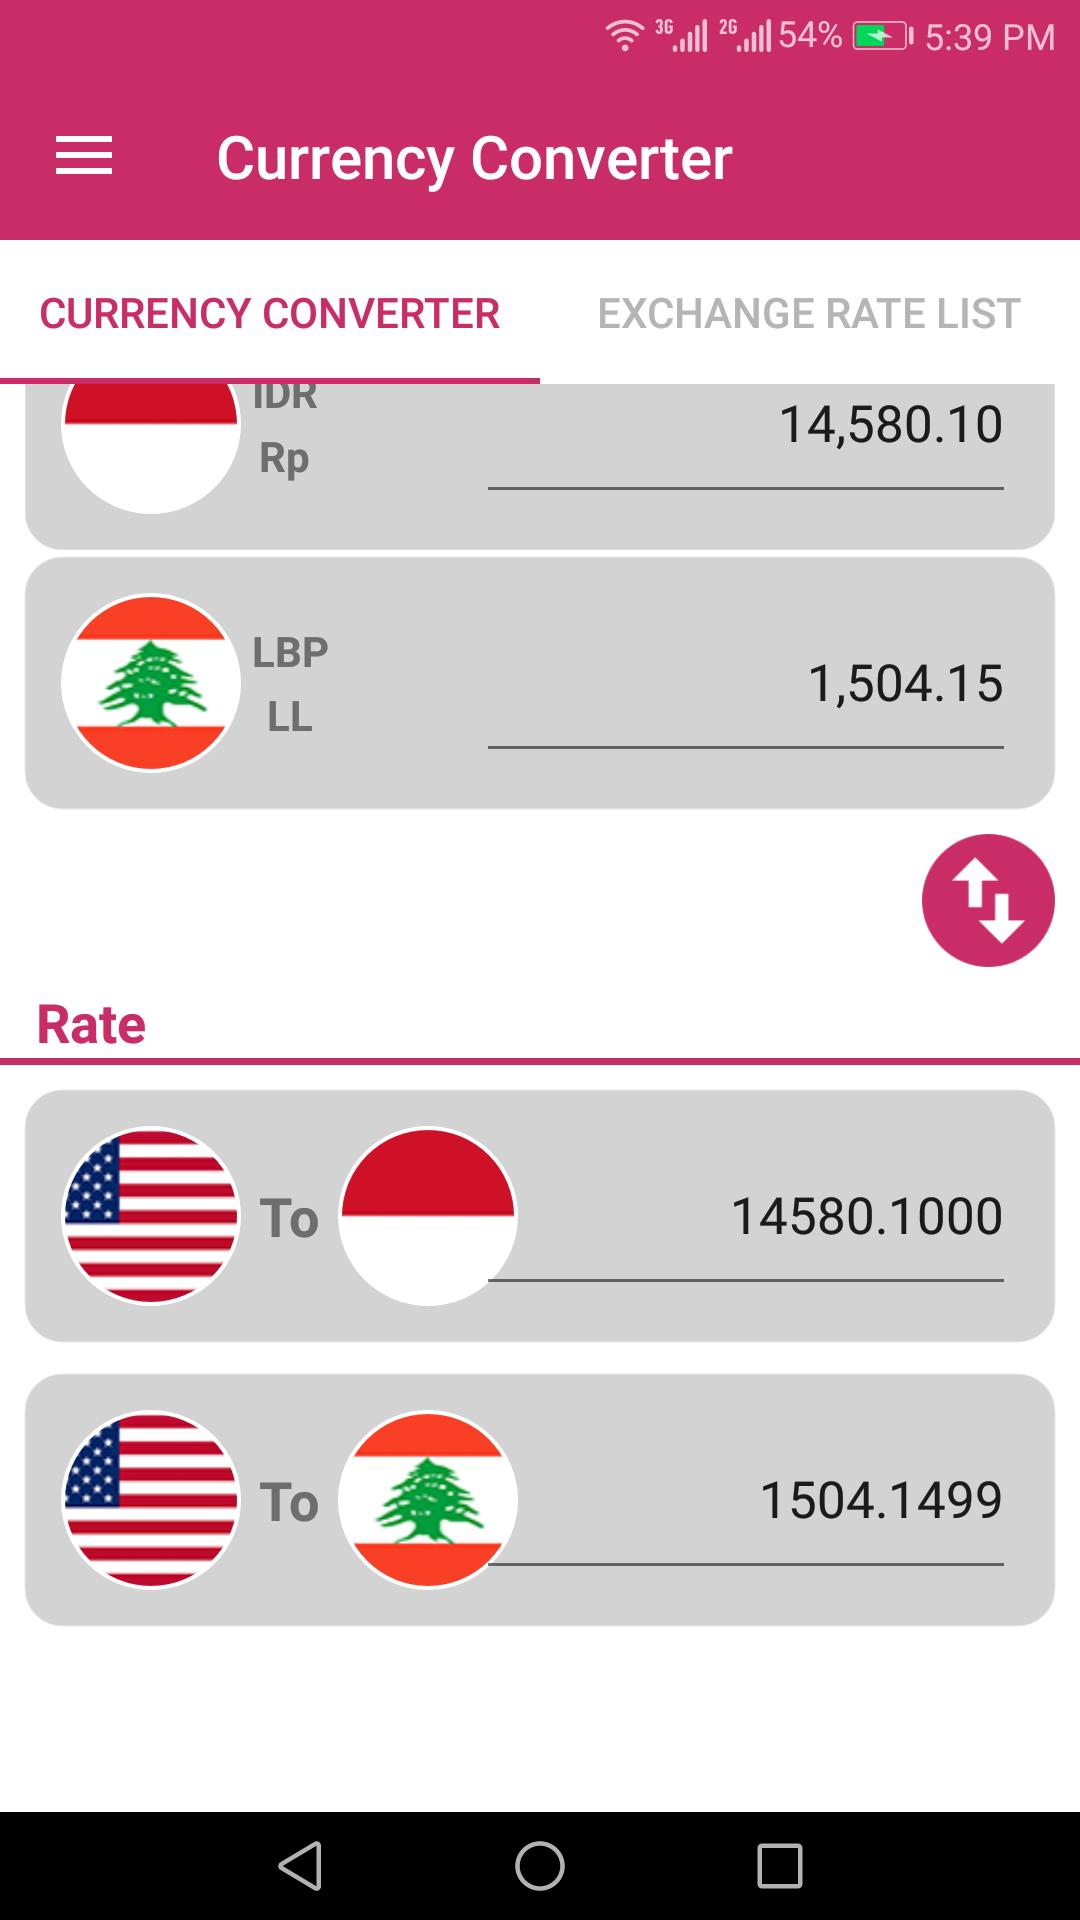 US Dollar To Indonesian Rupiah and LBP Converter for Android